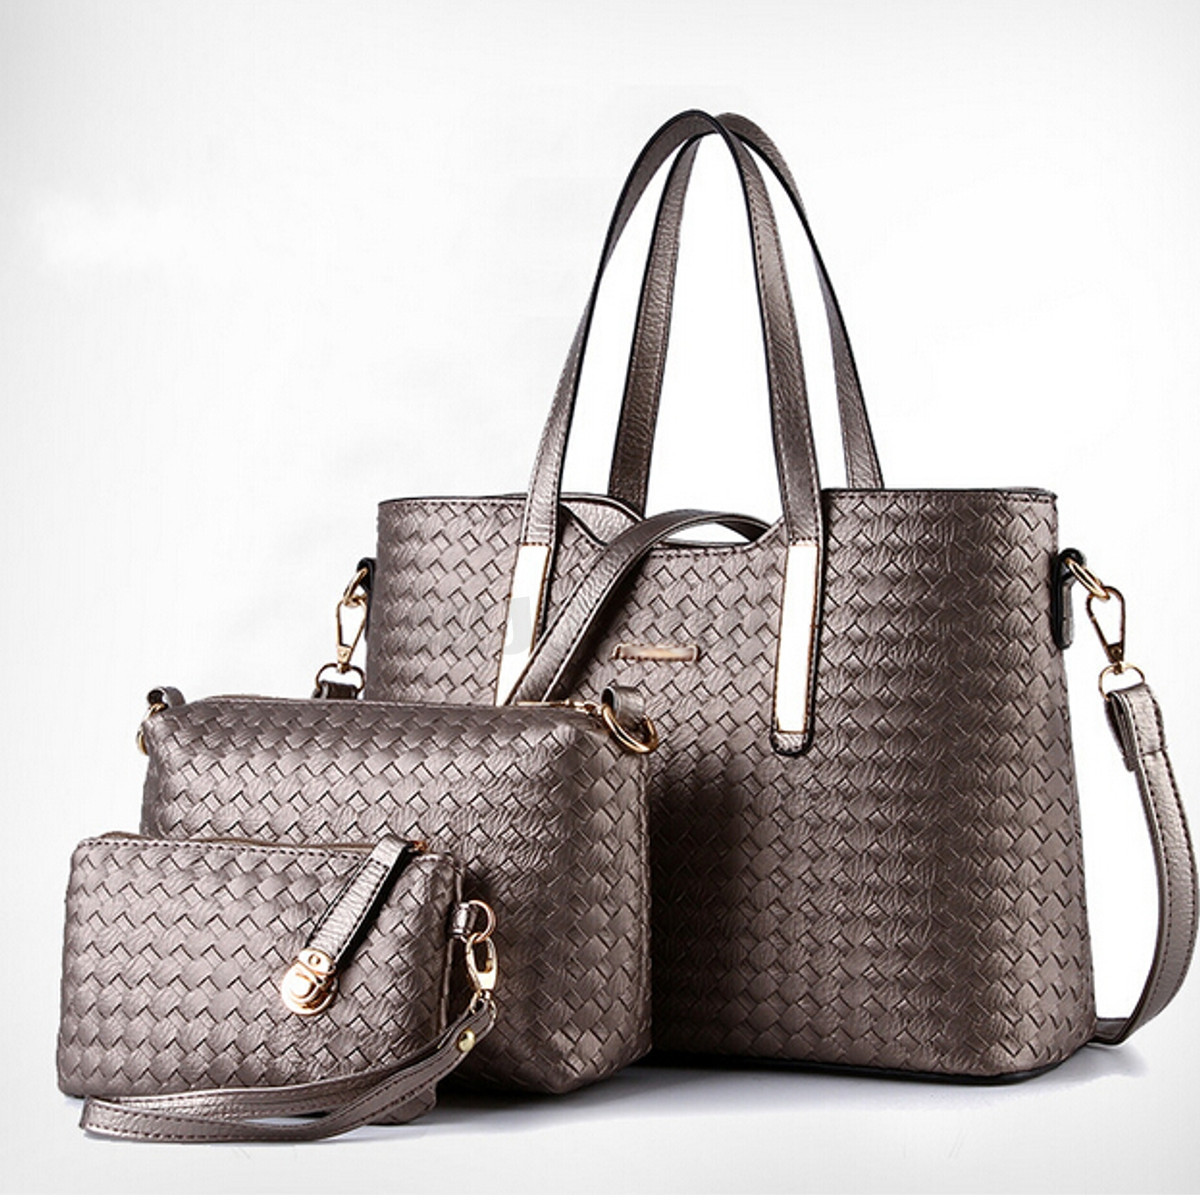 Shop 10mins.ml for your favorites handbags from Brahmin, Coach, MICHAEL Michael Kors, Dooney & Bourke, and Fossil. Designer purses including satchels, crossbody bags, clutches and wallets at 10mins.ml